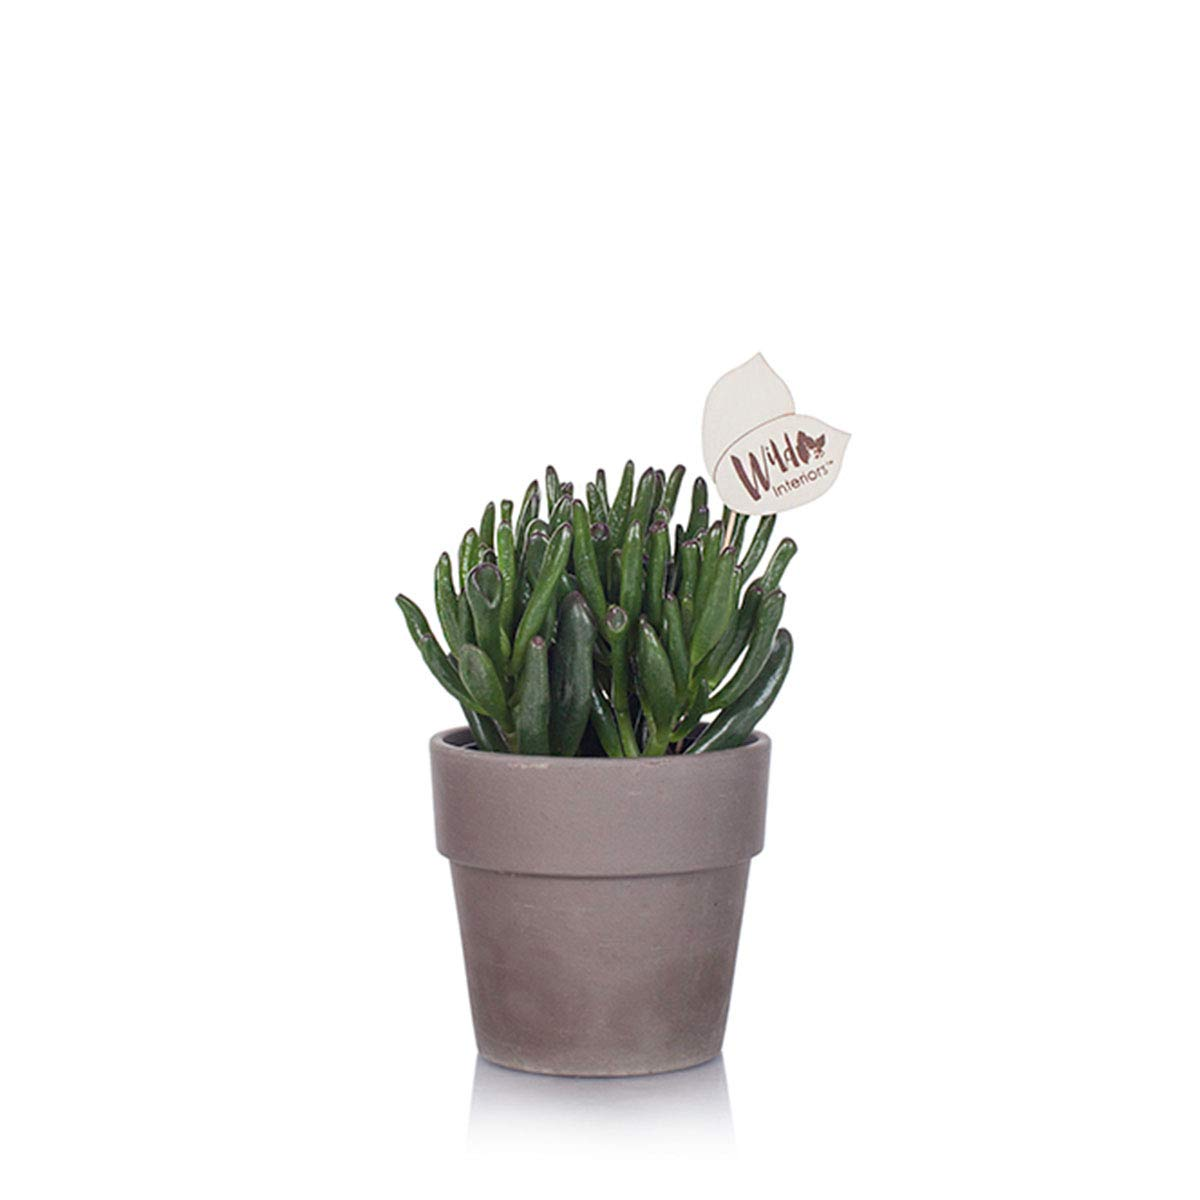 Wild Interiors WI111 Crassula Live Indoor Plant, Shelf Size (5'' Pot), Green by Wild Interiors